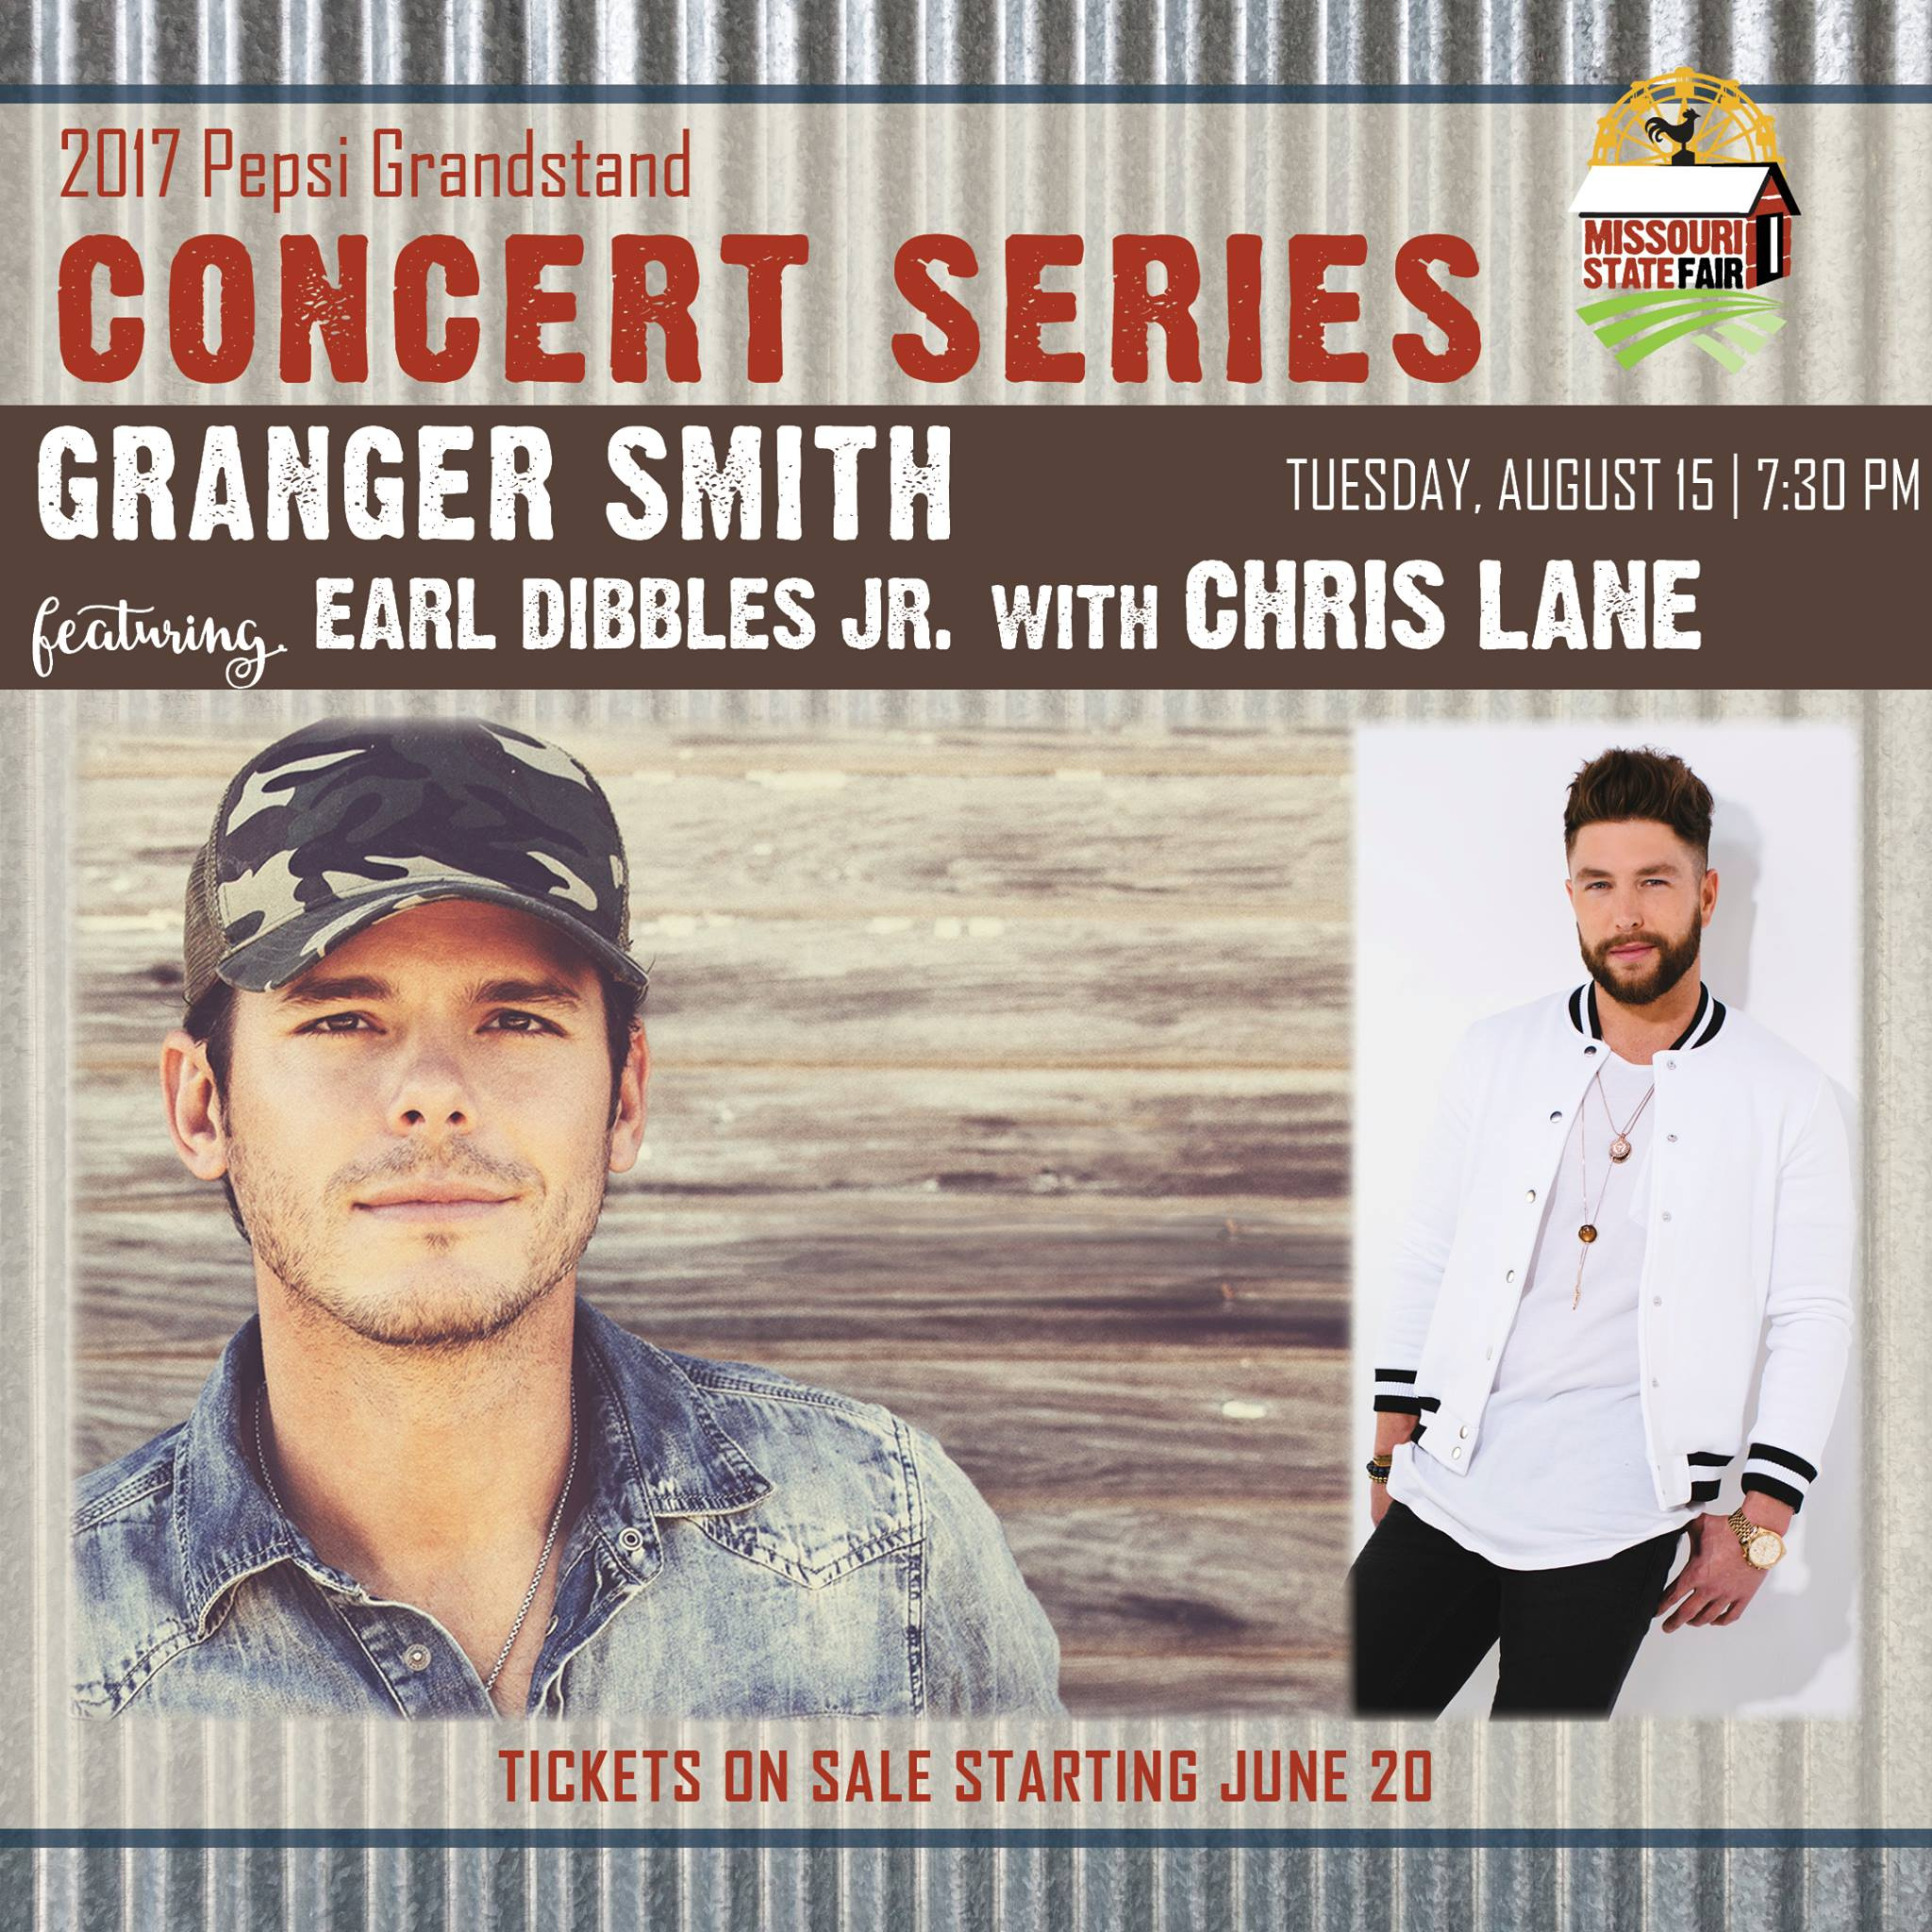 Granger Smith to perform at Missouri State Fair